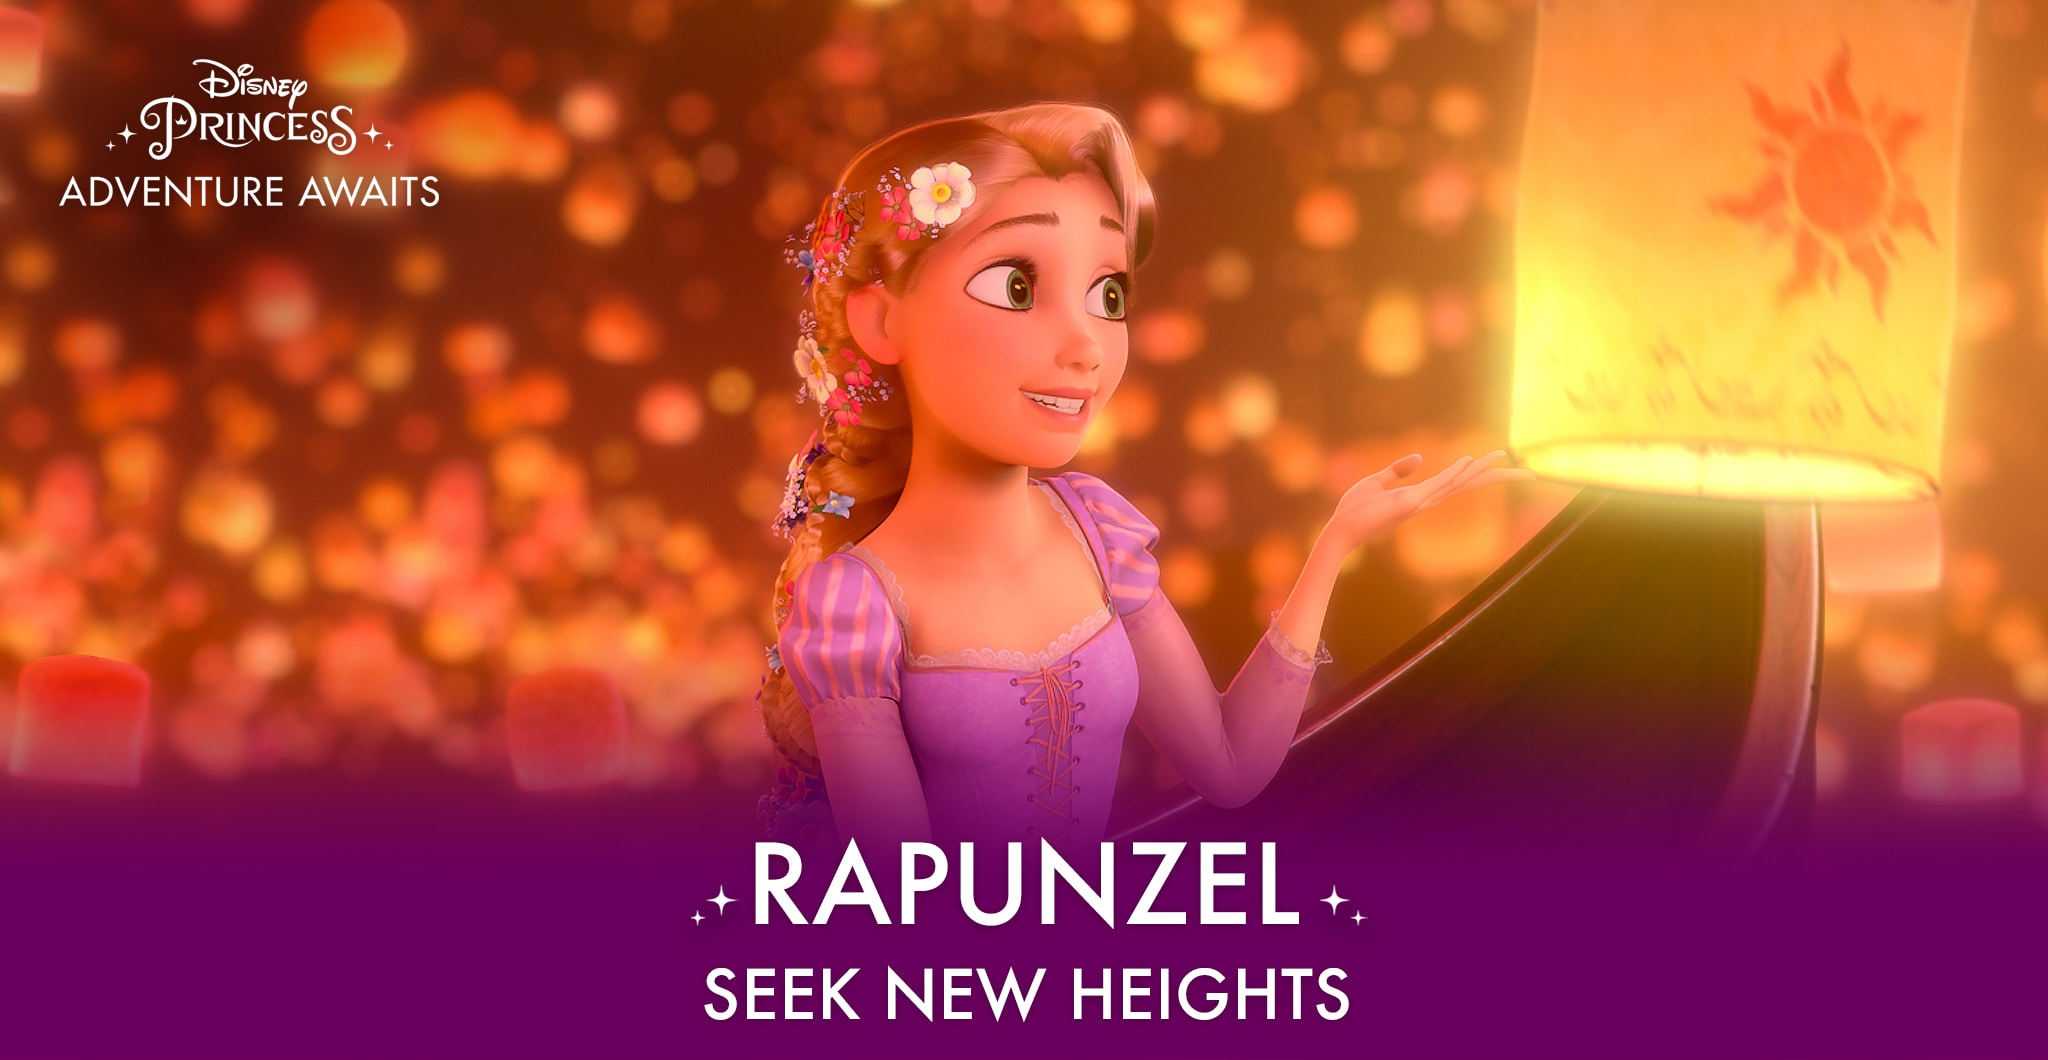 Rapunzel - Seek New Heights